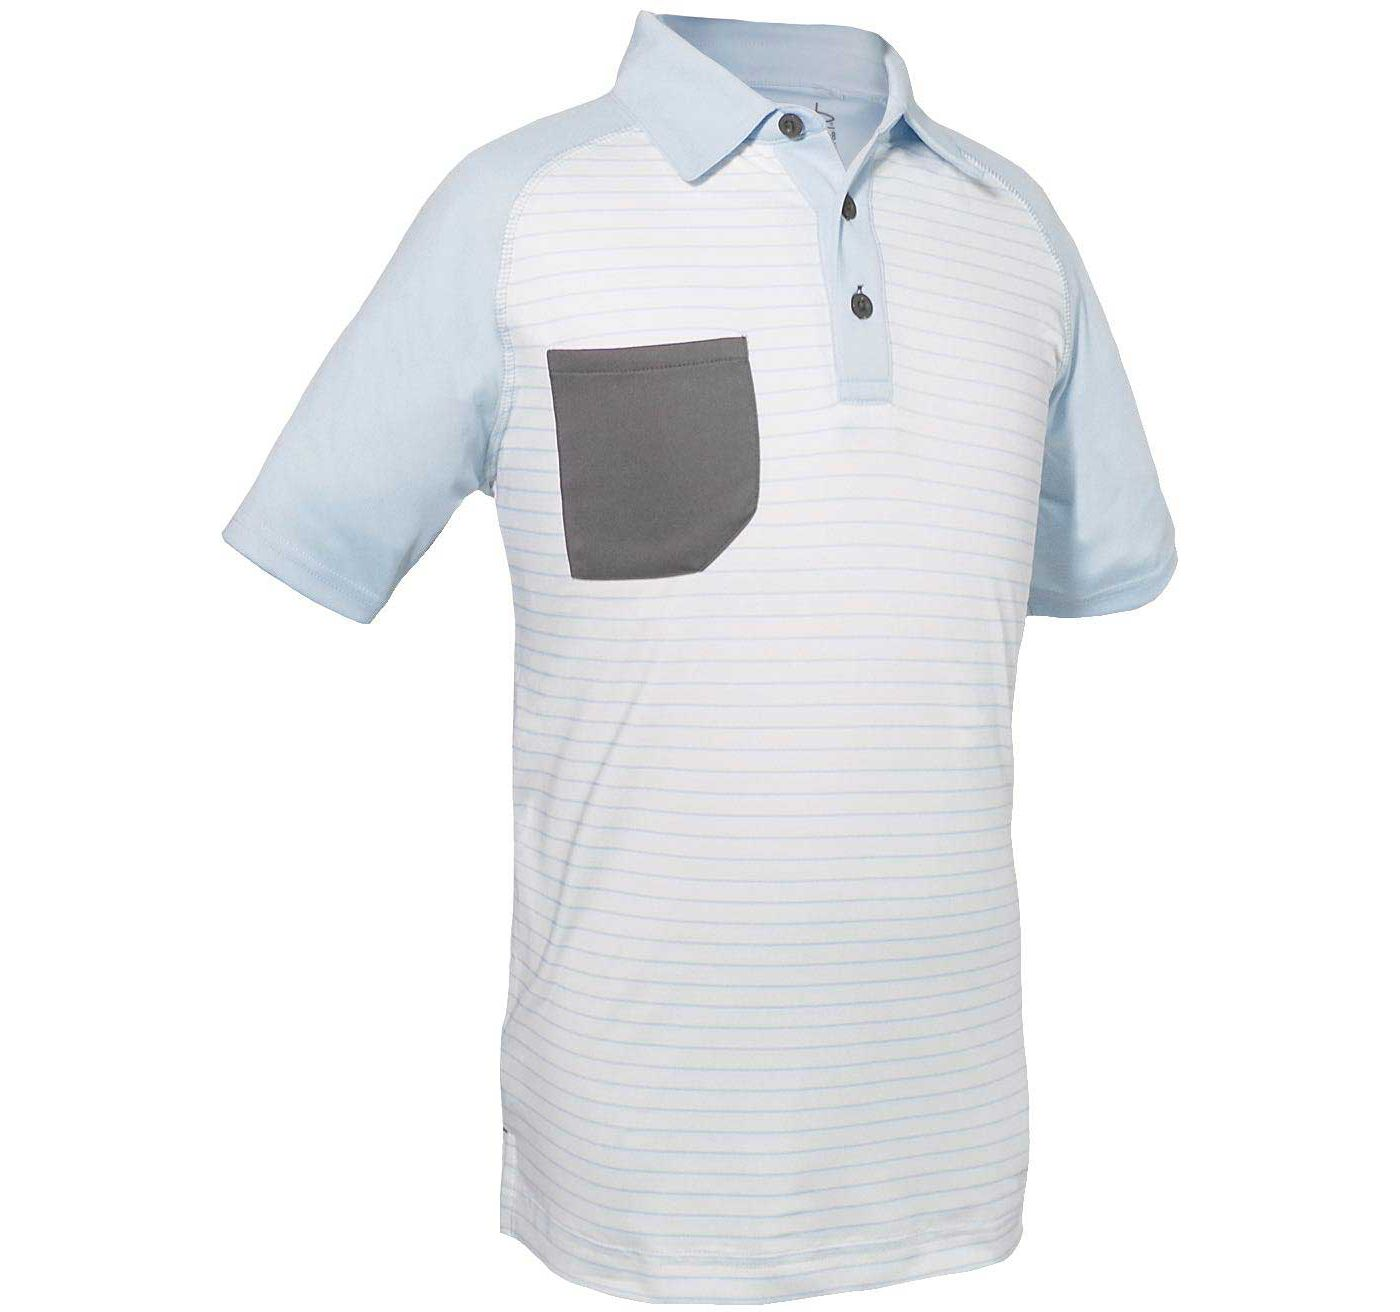 Garb Boys' Bryson Golf Polo